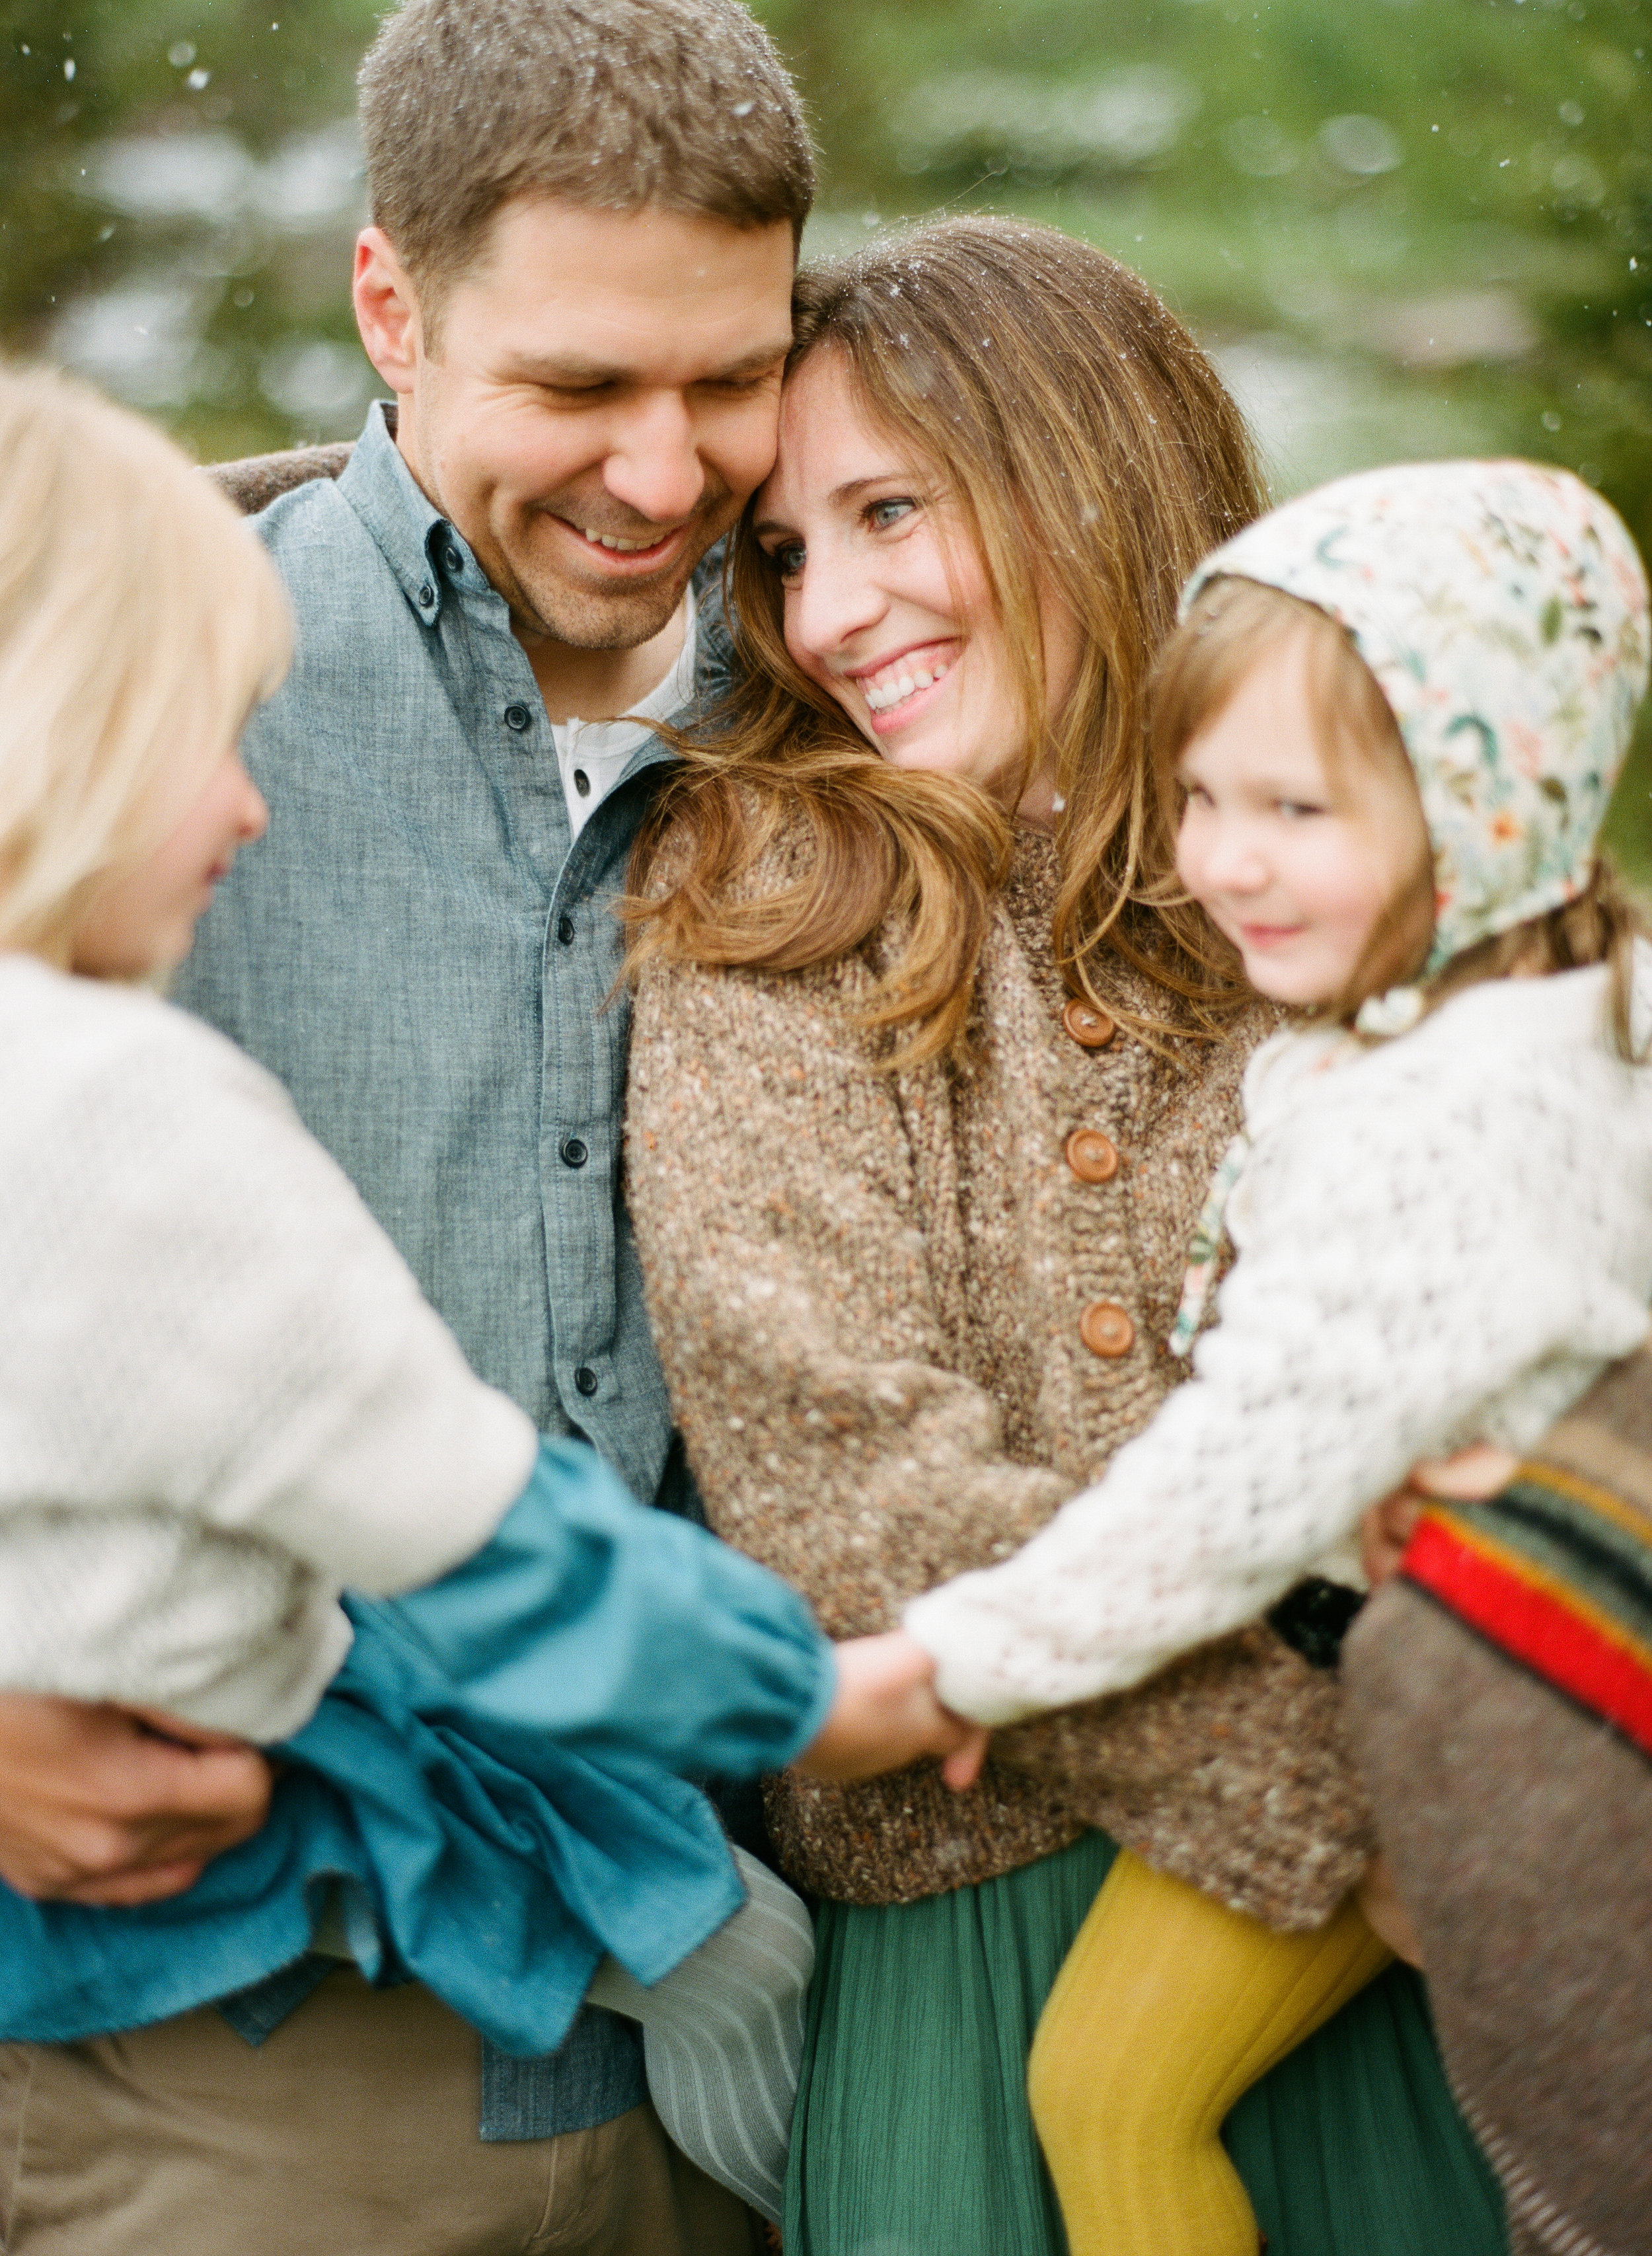 raleigh-lifestyle-family-photographer-lifestyle-photography-024